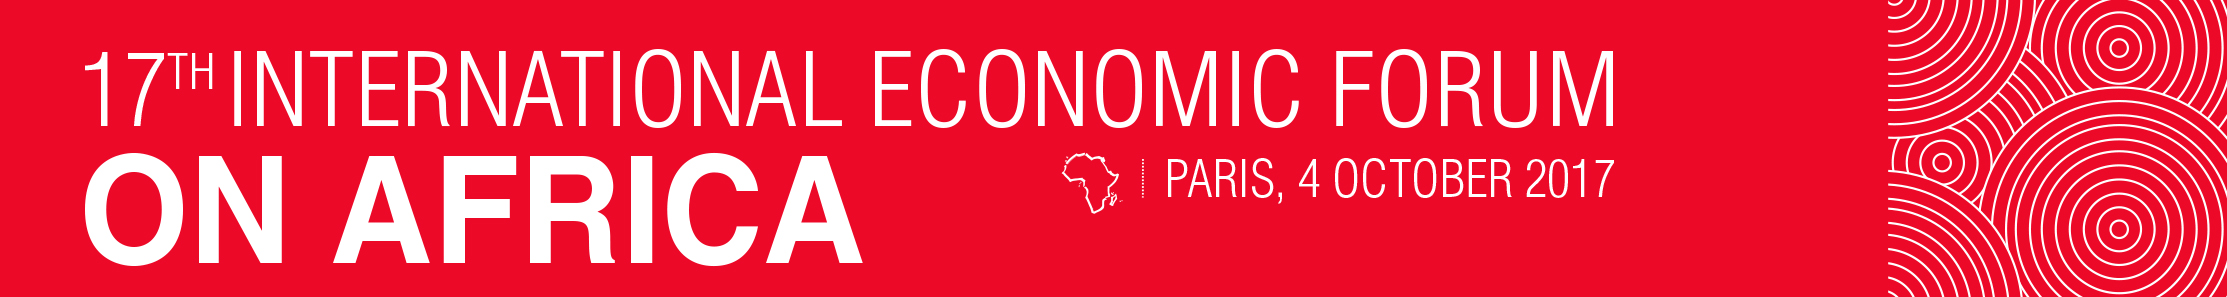 Forum Afrique2017-Visual Identity - FR-3